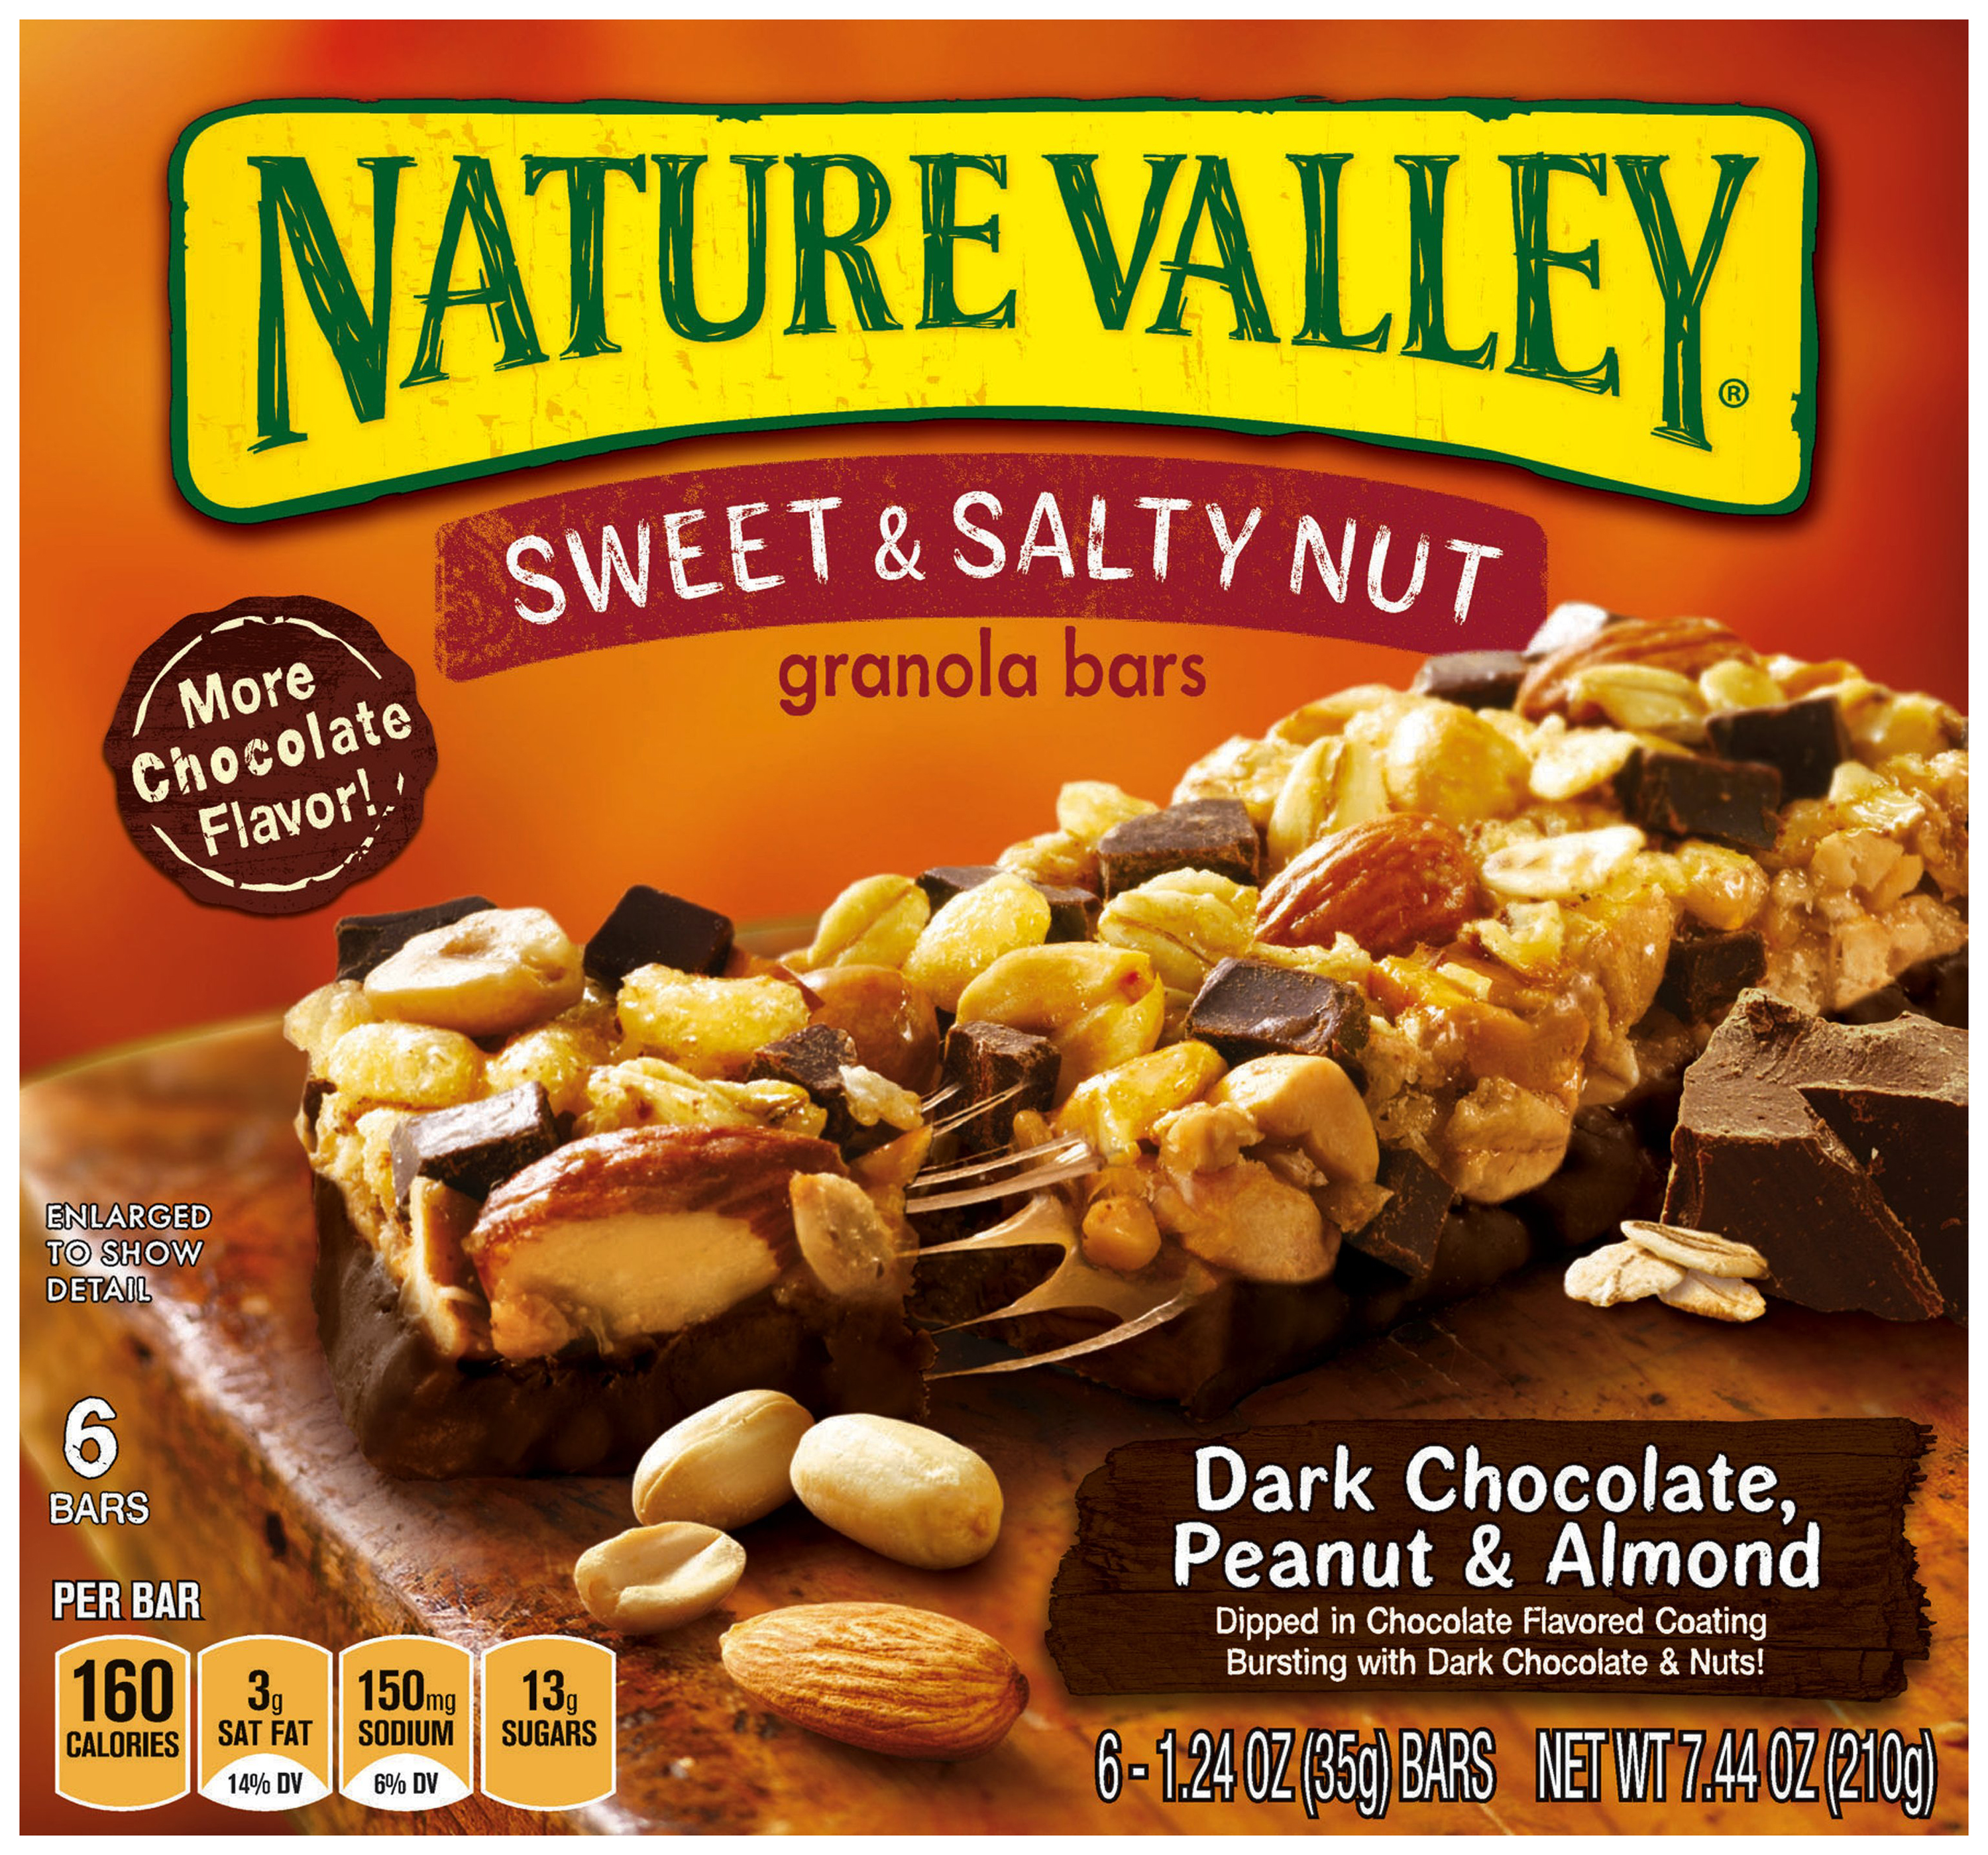 Nature Valley�� Dark Chocolate, Peanut & Almond Sweet & Salty Nut Granola Bars 6 ct. Box